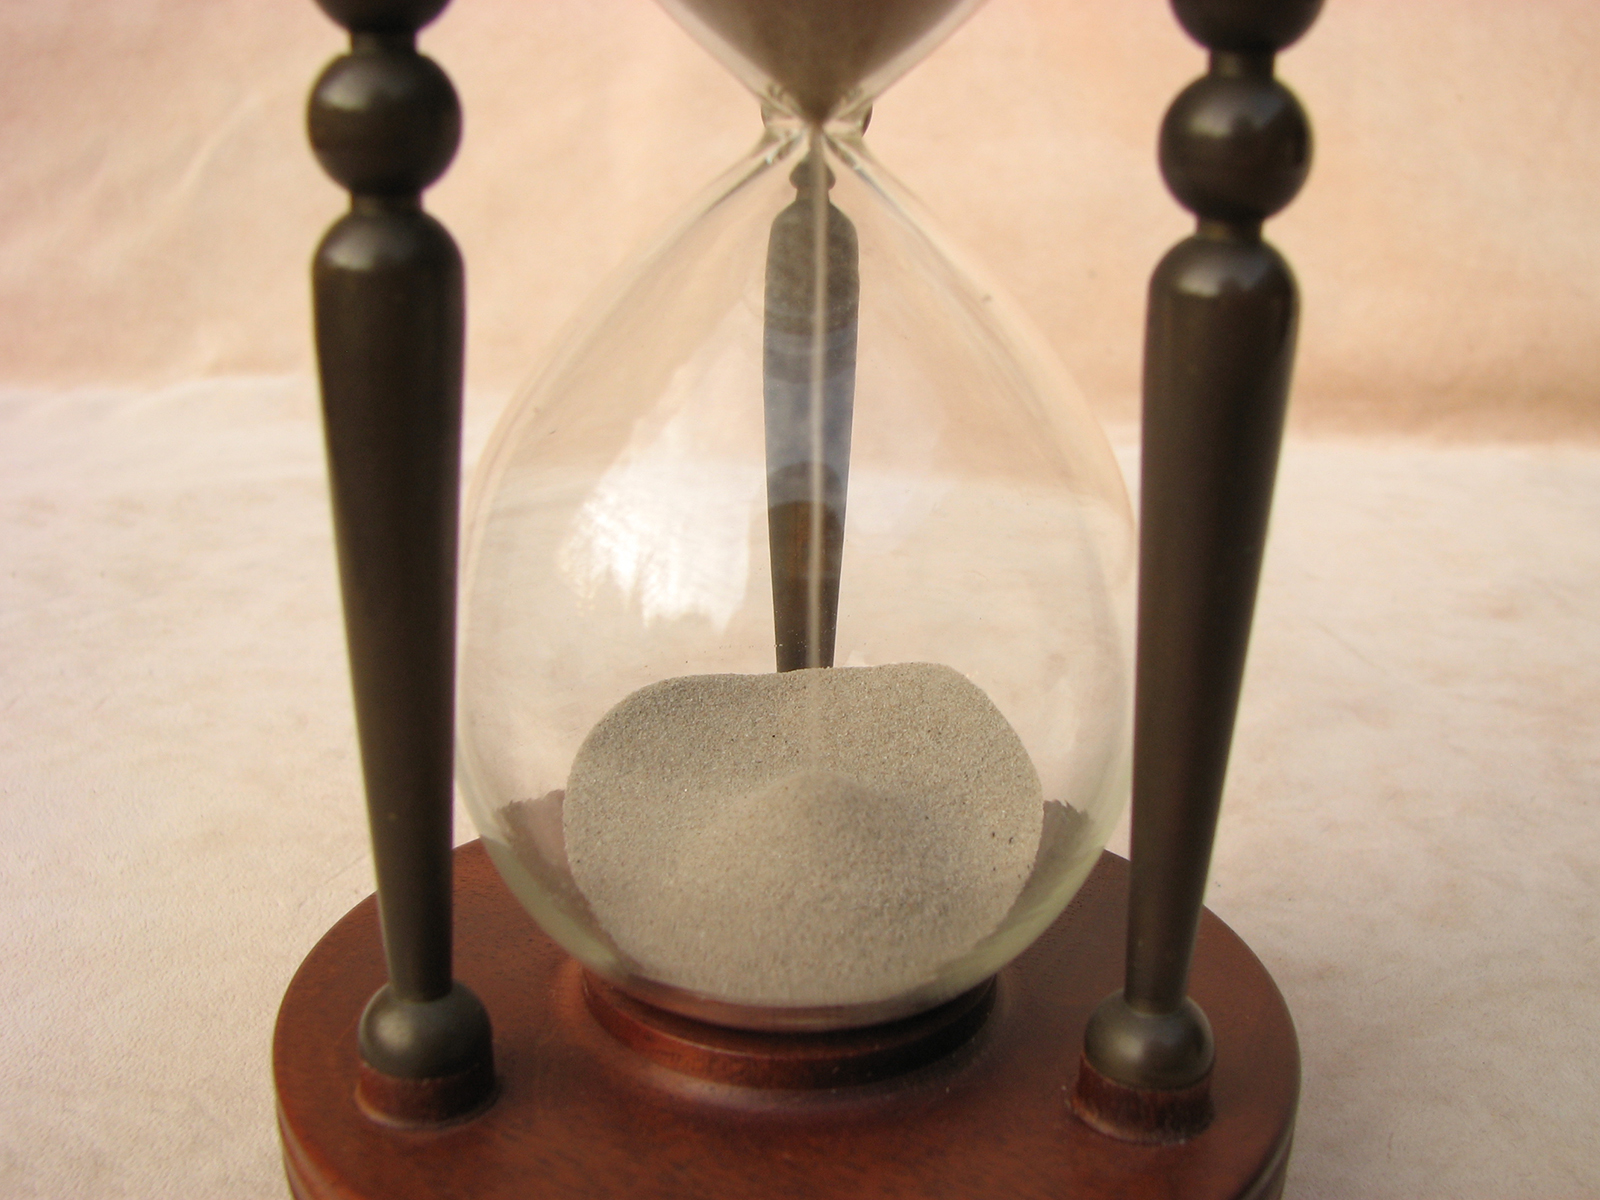 Mid 20th Century circular sand timer with brass pillars